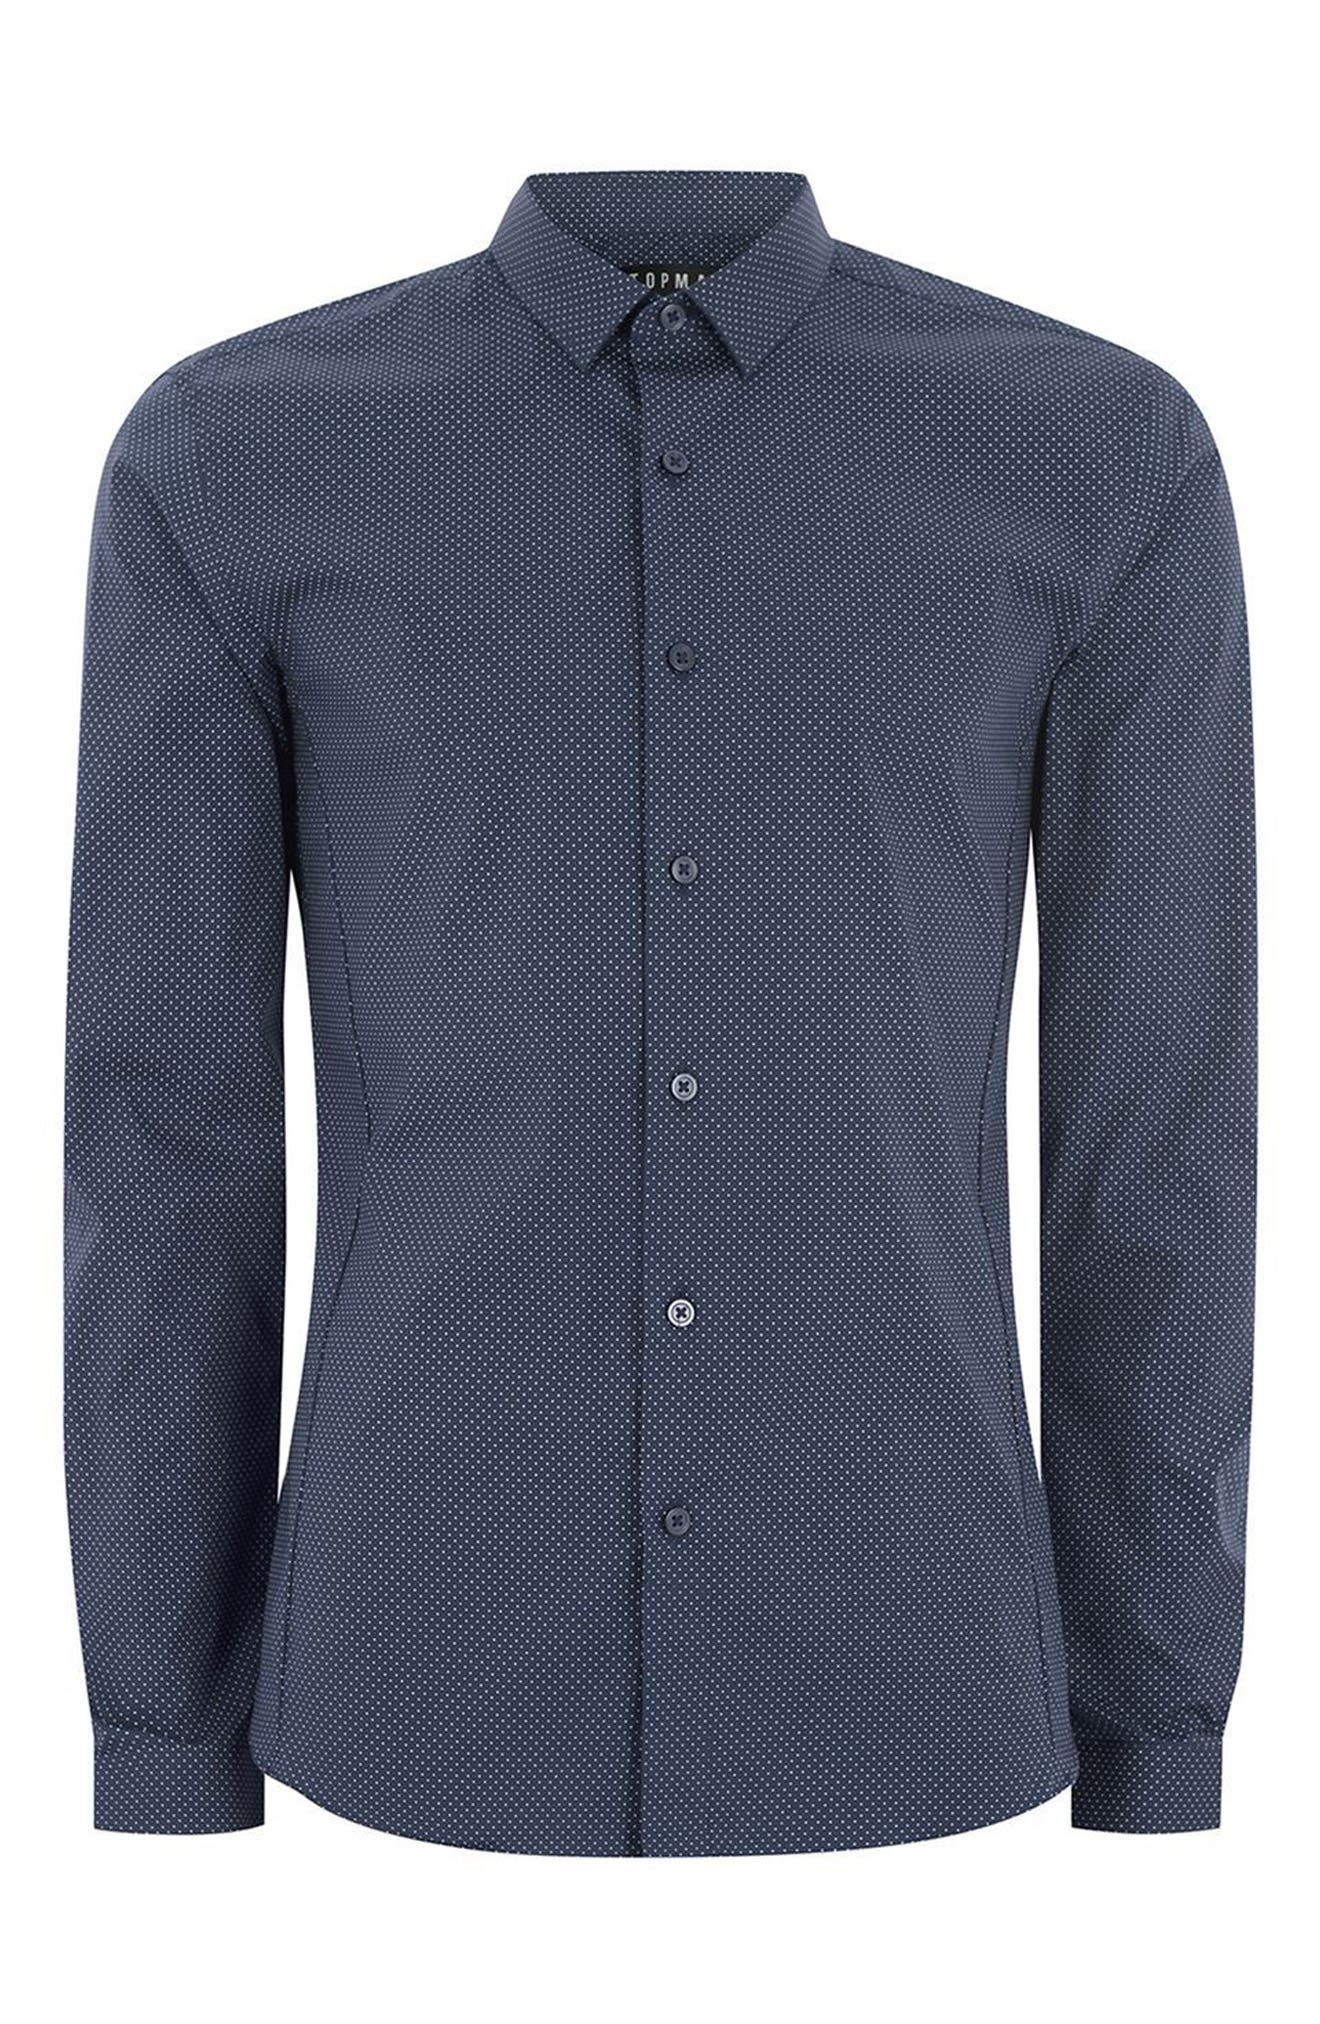 Polka Dot Stretch Smart Shirt,                             Alternate thumbnail 4, color,                             Navy Blue Multi